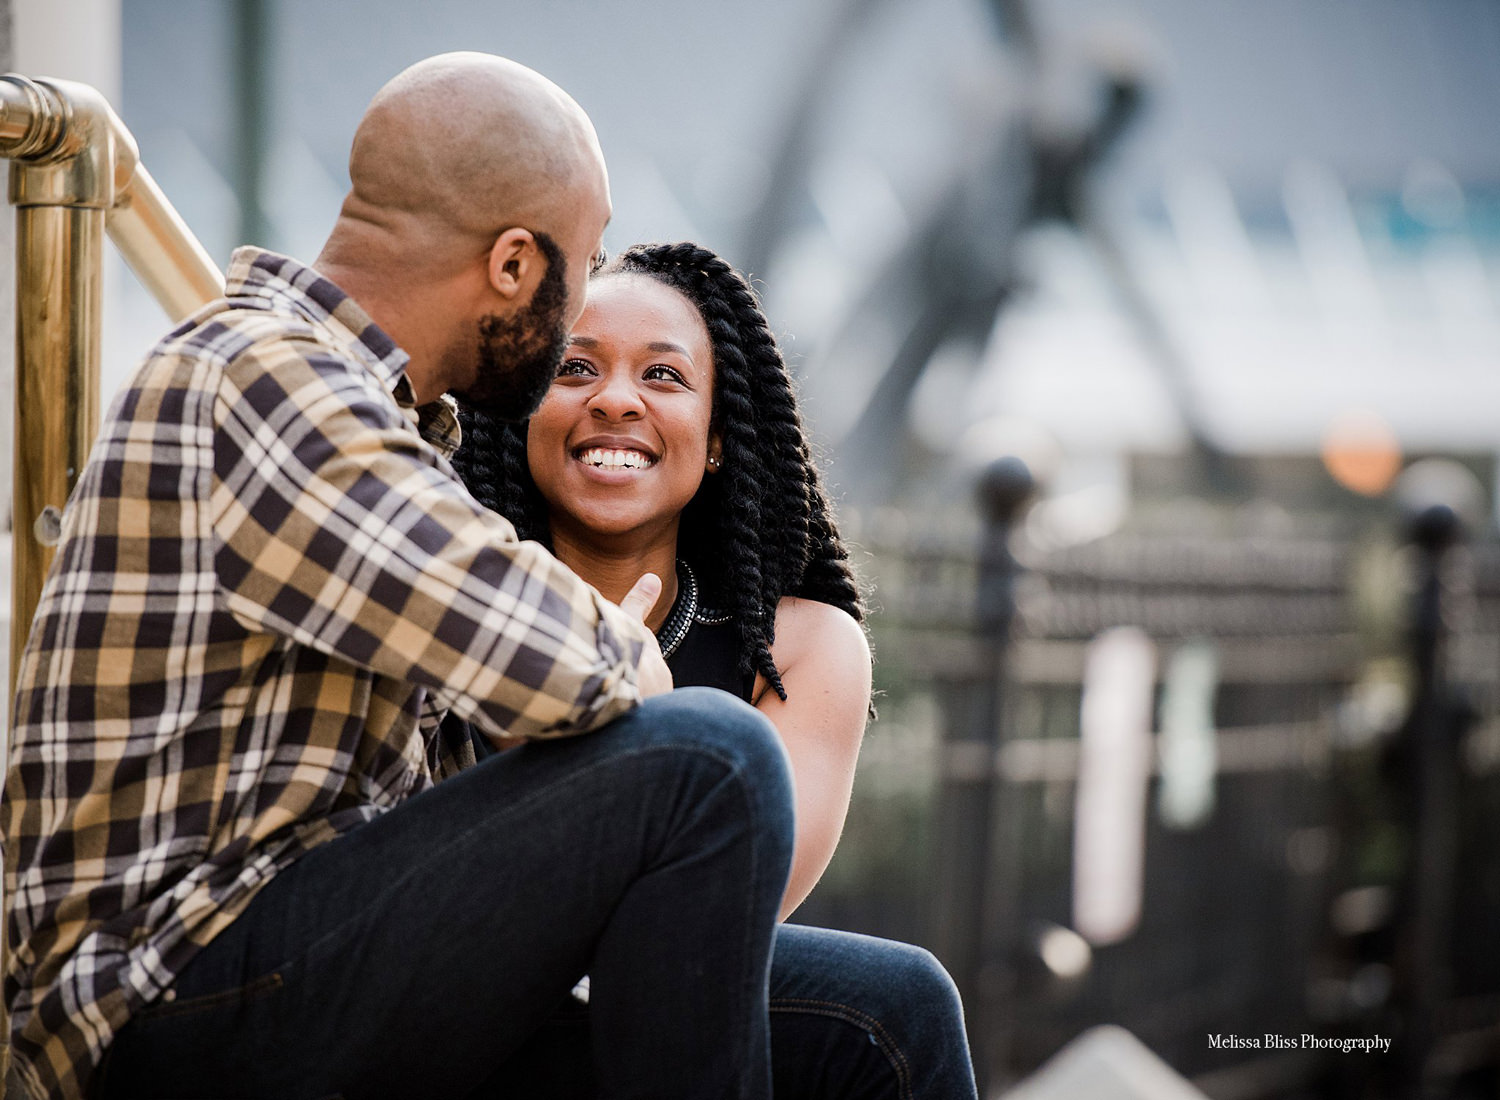 engagement-pictures-downtown-norfolk-photographer-melissa-bliss-photography.jpg